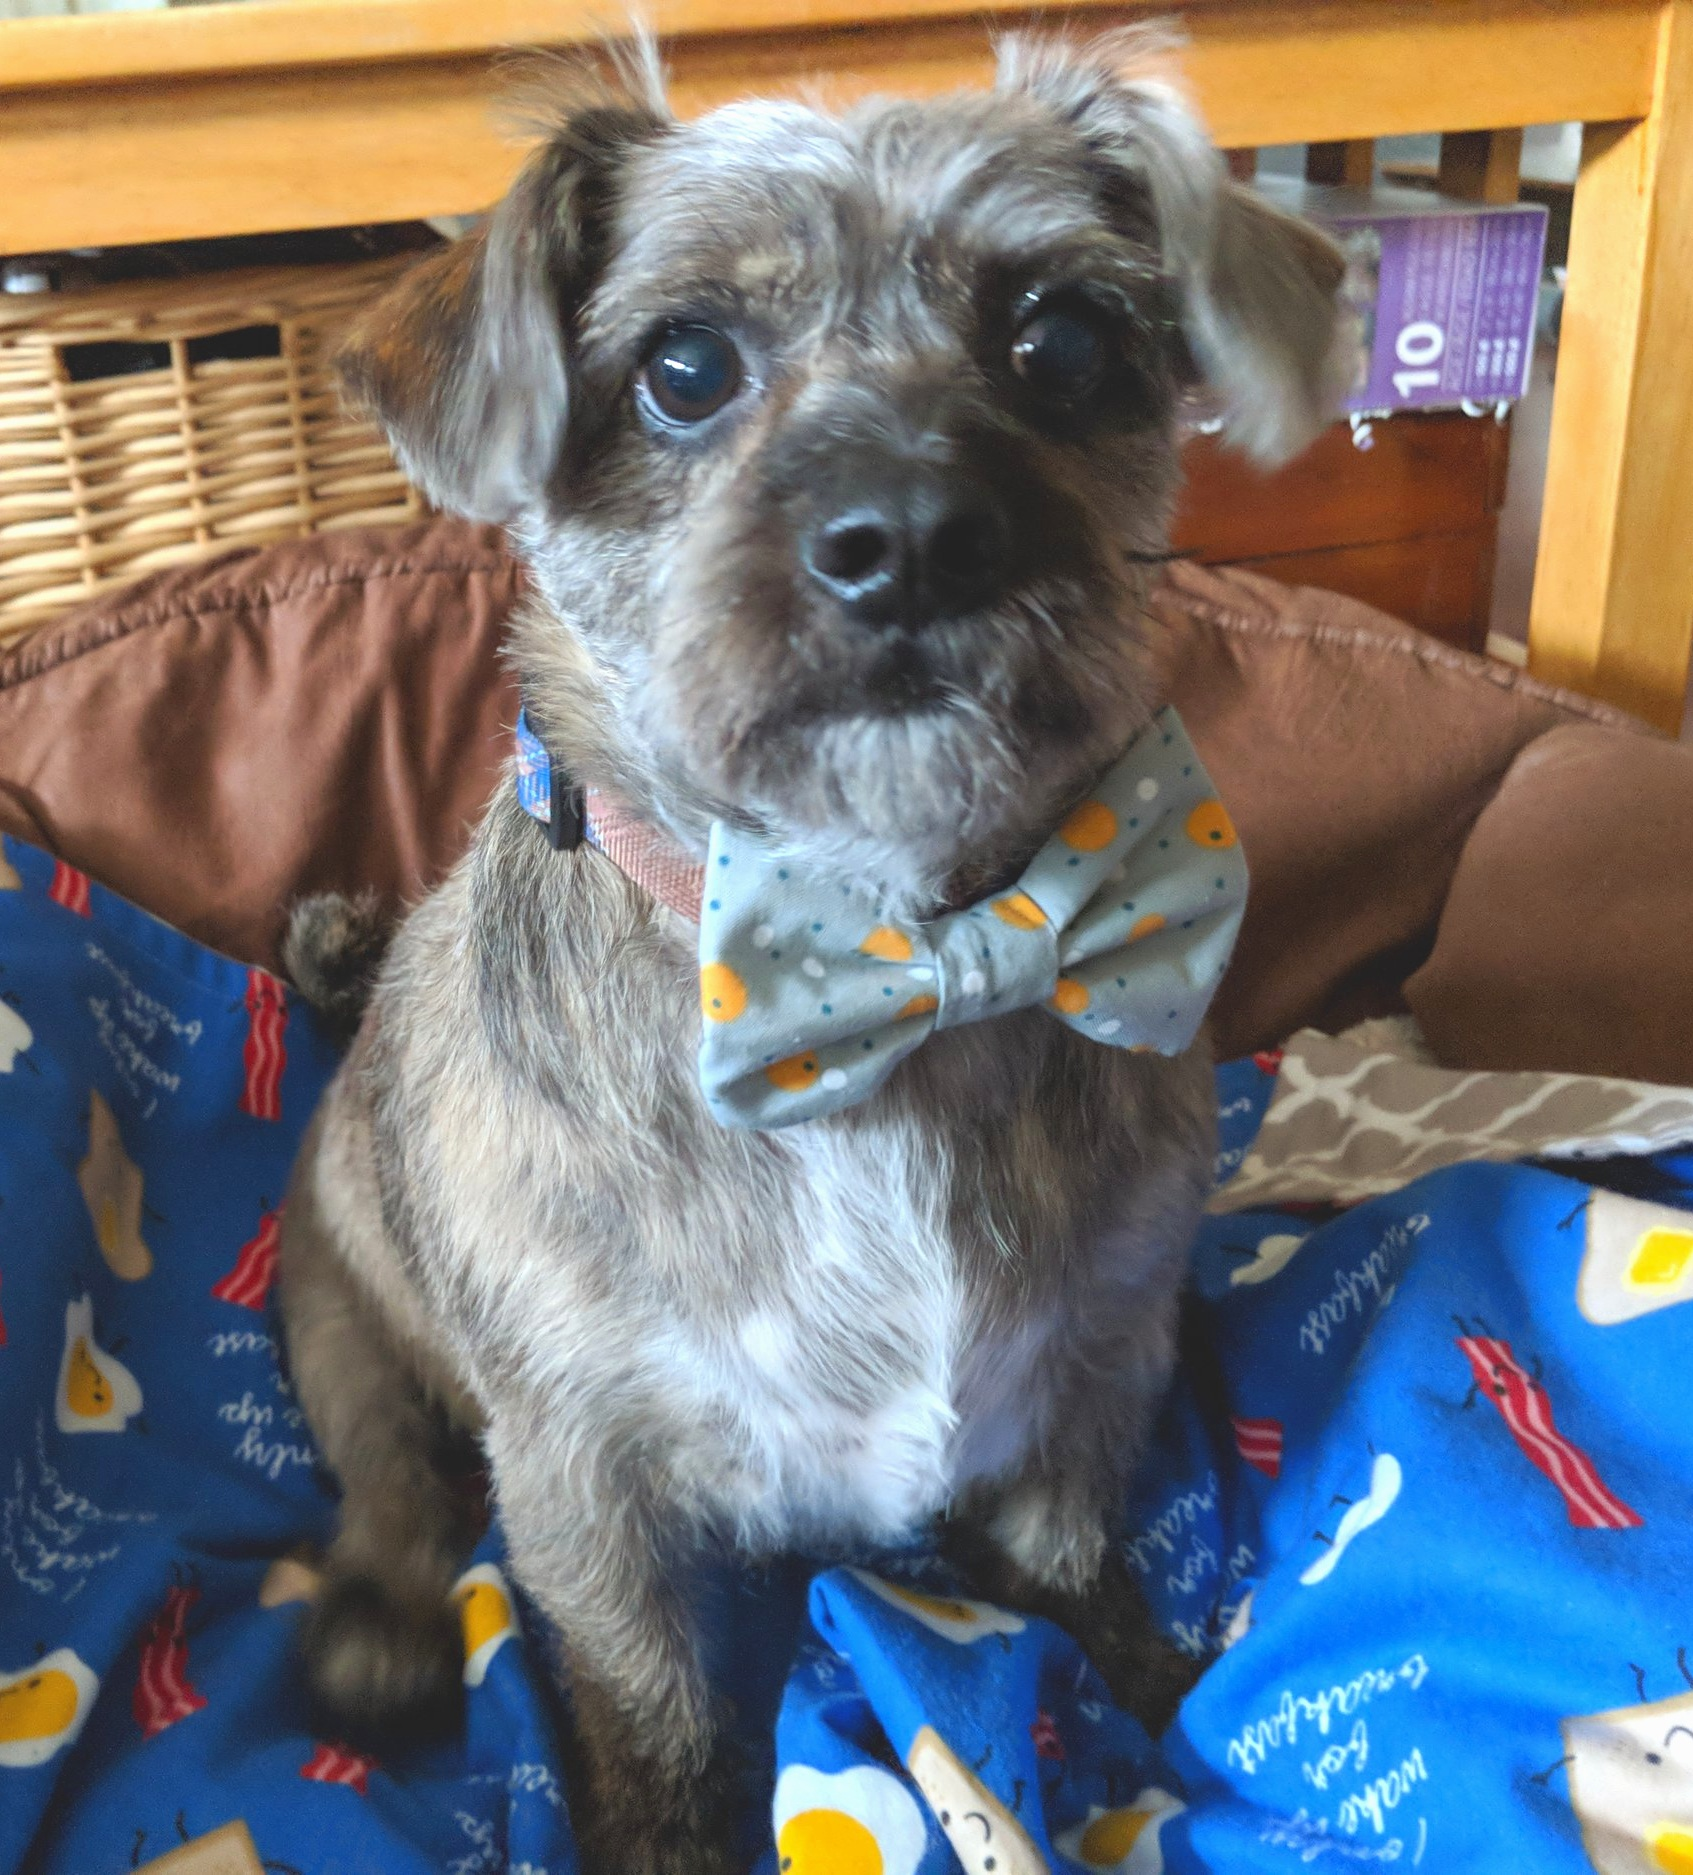 Toby 2018  And yes, he really wears bow ties every day!